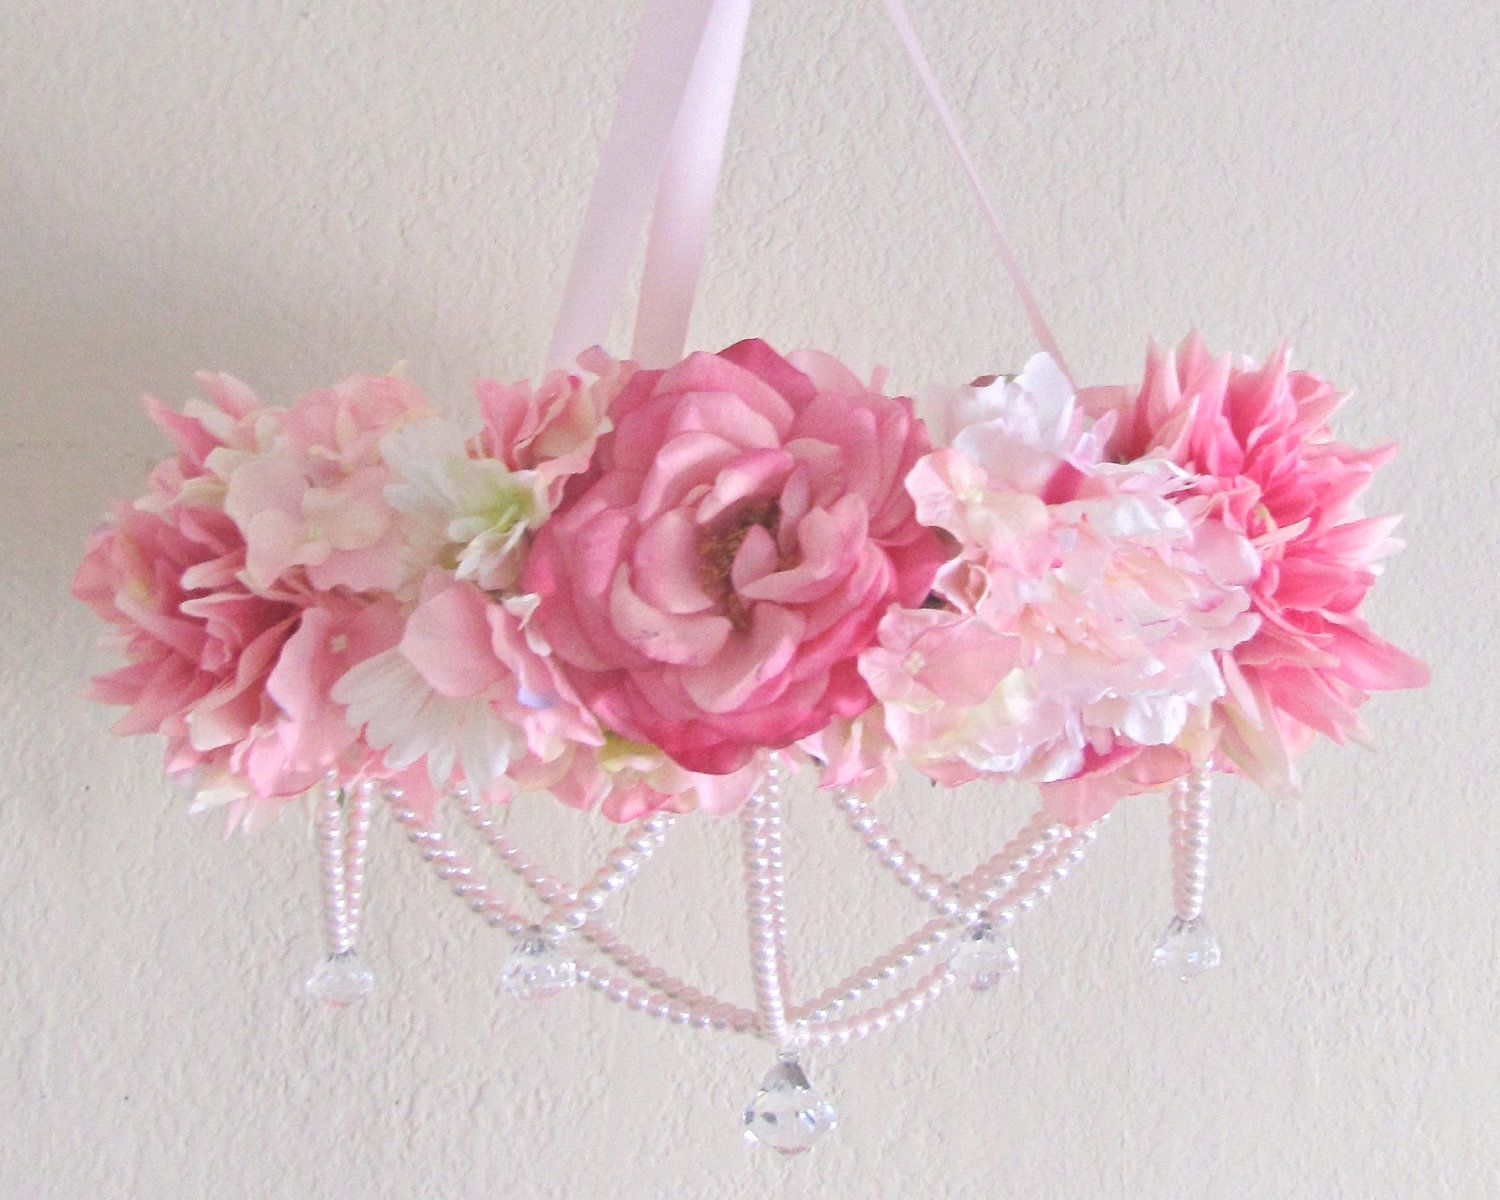 Baby mobile flower crib mobile floral chandelier shabby chic pink baby mobile flower crib mobile floral chandelier shabby chic pink baby girl nursery decor pearls aloadofball Gallery